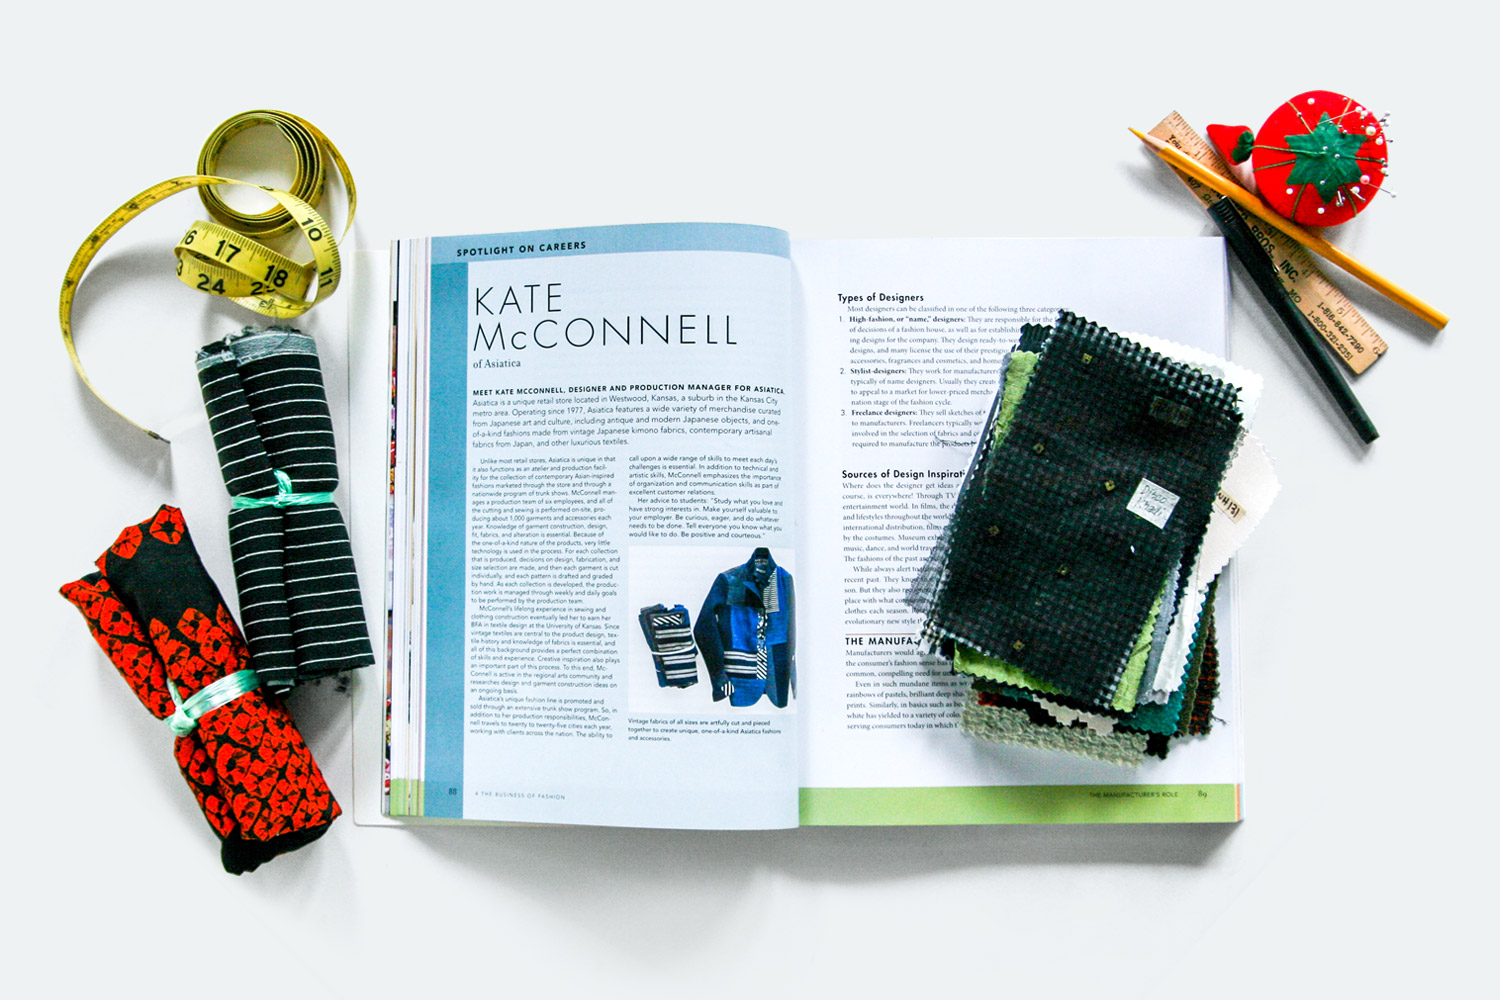 Spotlight on Careers: Kate McConnell in  IN FASHION